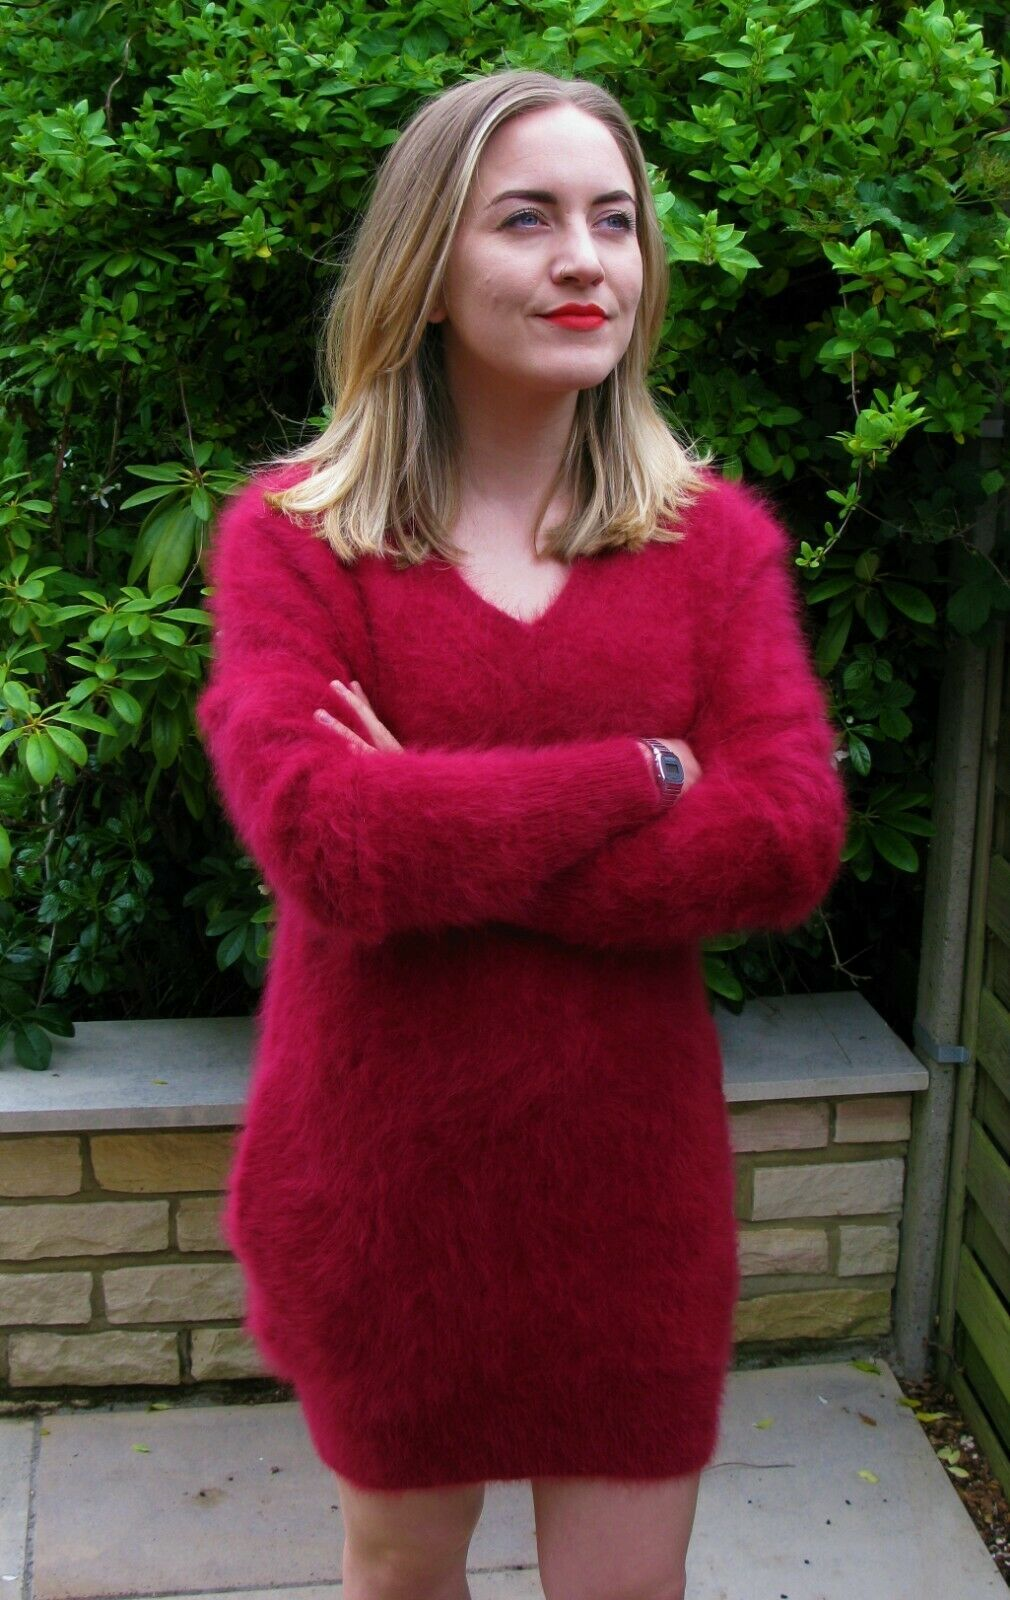 Ladies Luxurious Seductive Soft Fluffy Red Angora Sweater Dress M 34 59 99 Ebay Sweater Dress Angora Sweater Dress Sweaters [ 1600 x 1010 Pixel ]